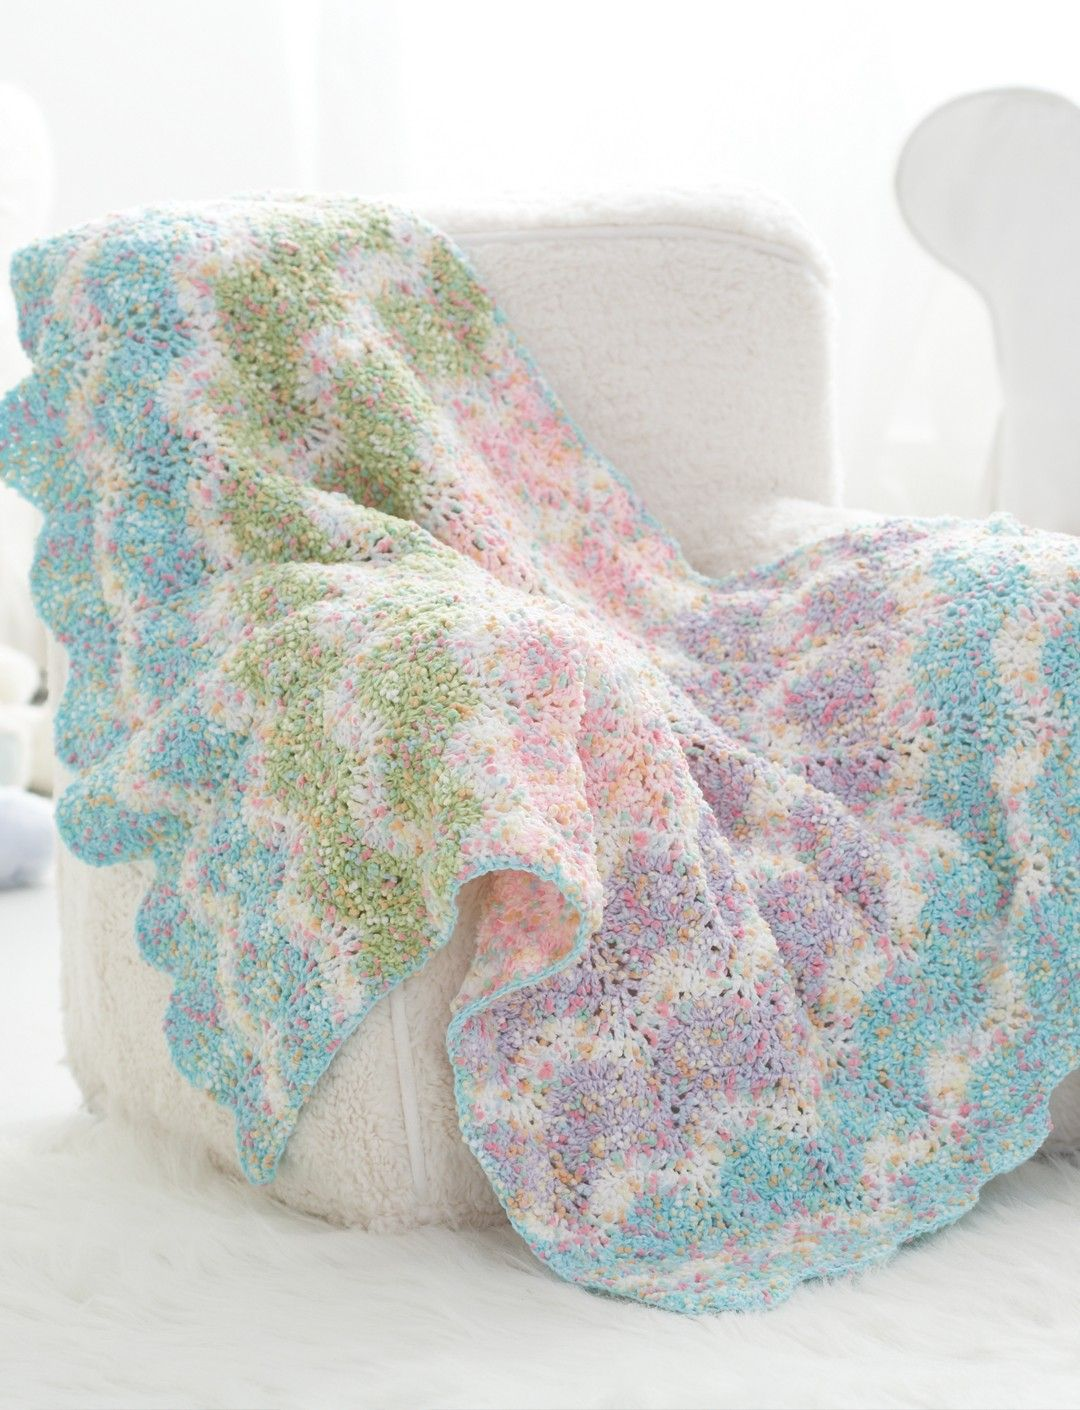 Yarnspirations bernatchevronstripesbabyblanket extra sweet this charming baby blanket is the perfect gift for the little guy or gal in your life the sweet pastel waves crochet baby blanket pattern is a bankloansurffo Gallery